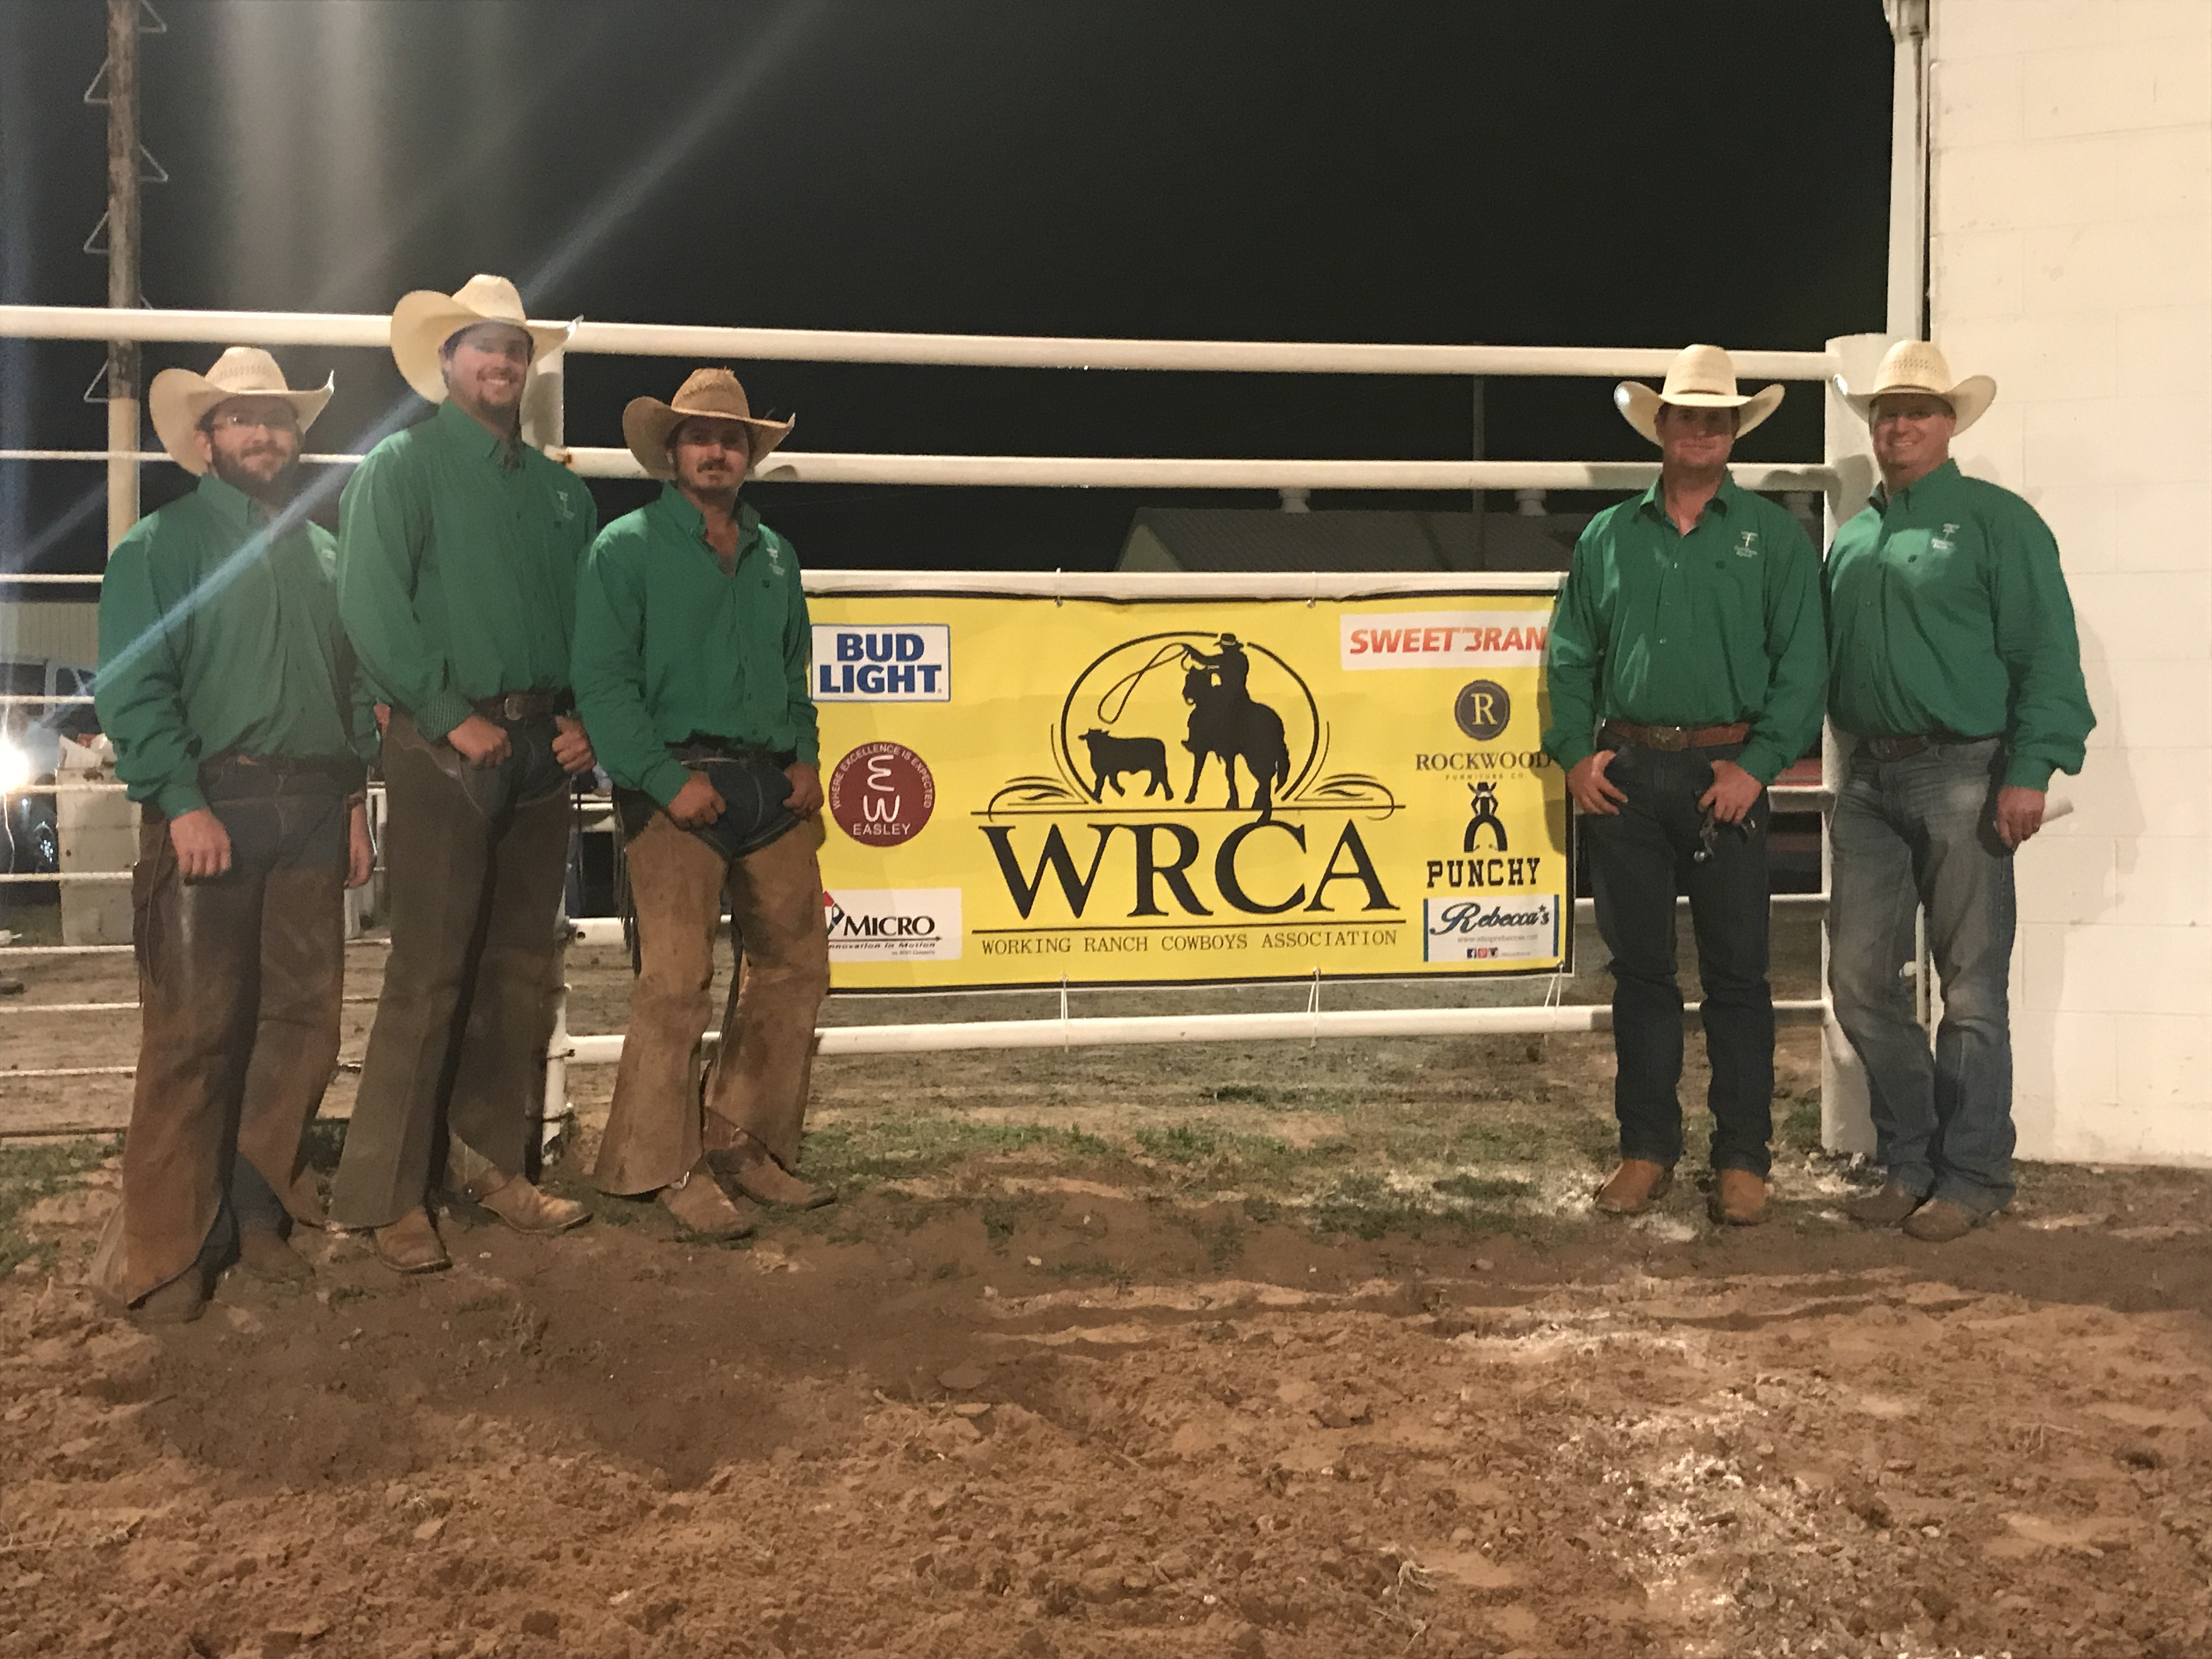 2017 Earth Ranch Rodeo First Place Ranch Team Thompson Ranch (Already Qualified), Munday, Texas. Team Members: Tyler Thompson, Chace Thompson, Tyson Thompson, Trey Thompson, Chad Williams, Kolton Burnett